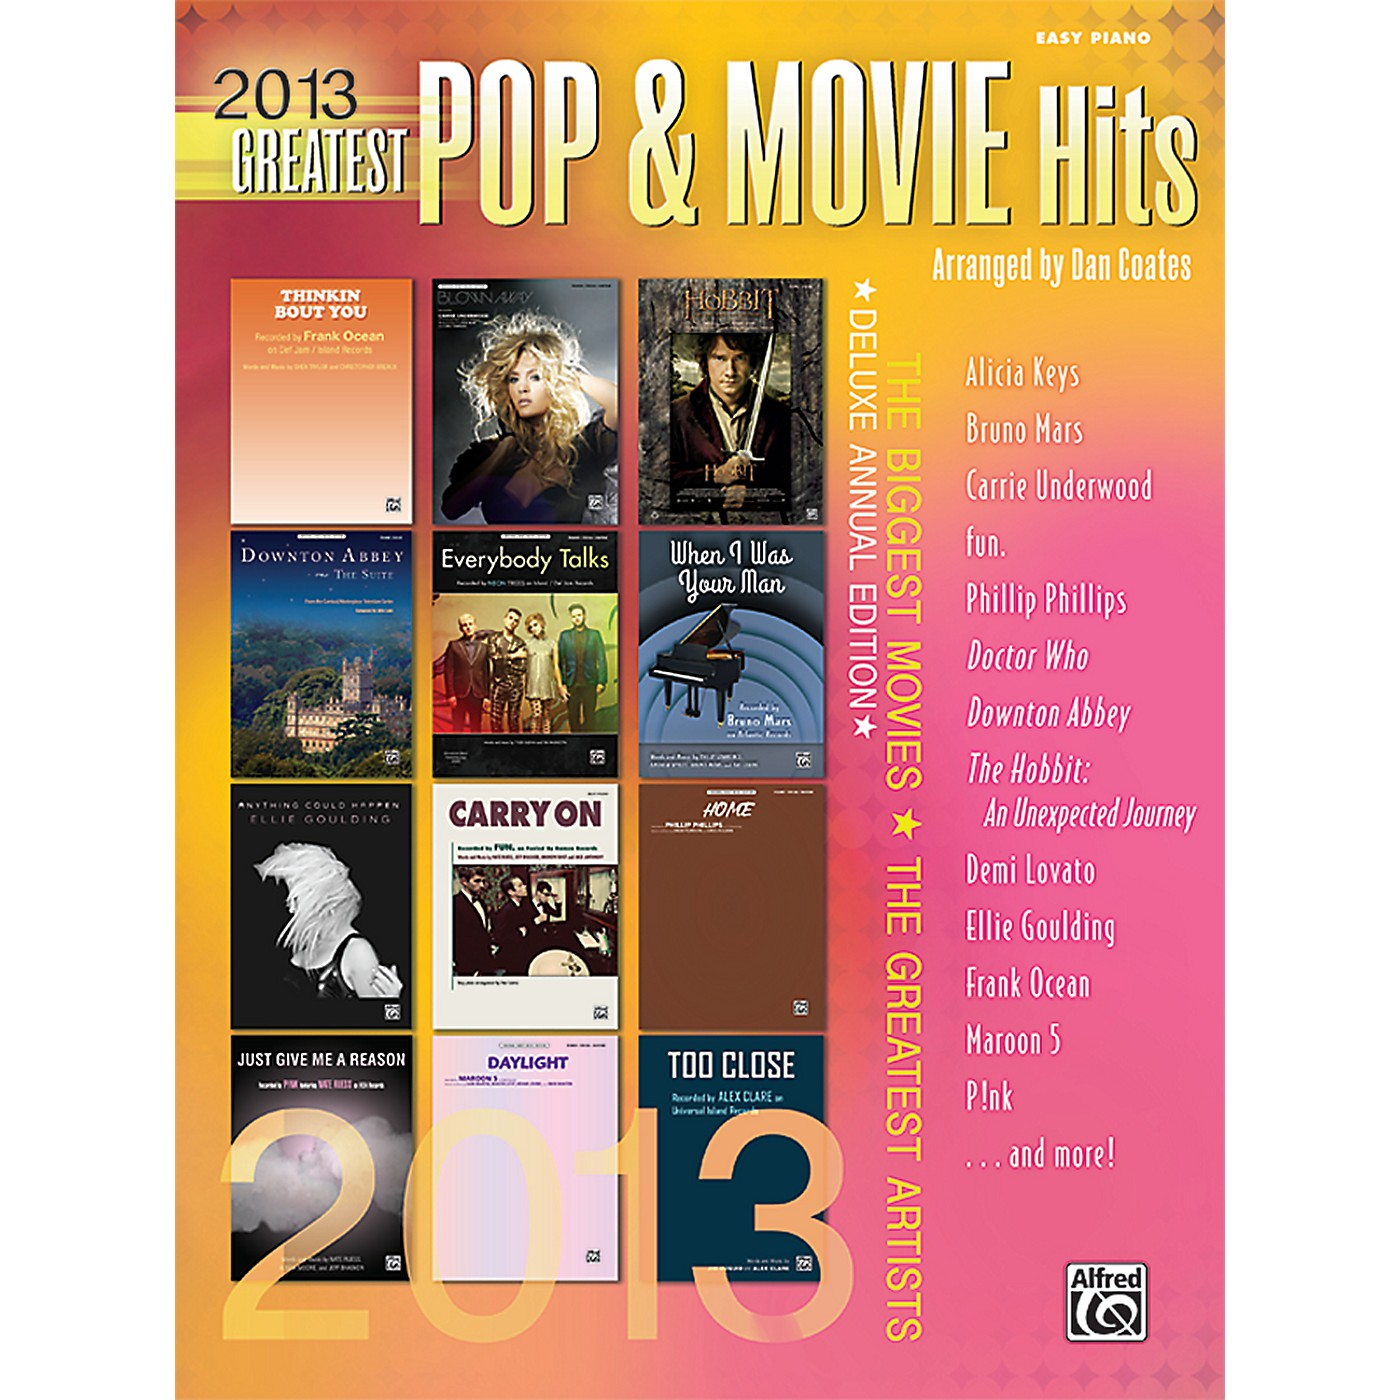 Alfred 2013 Greatest Pop & Movie Hits Easy Piano Book thumbnail